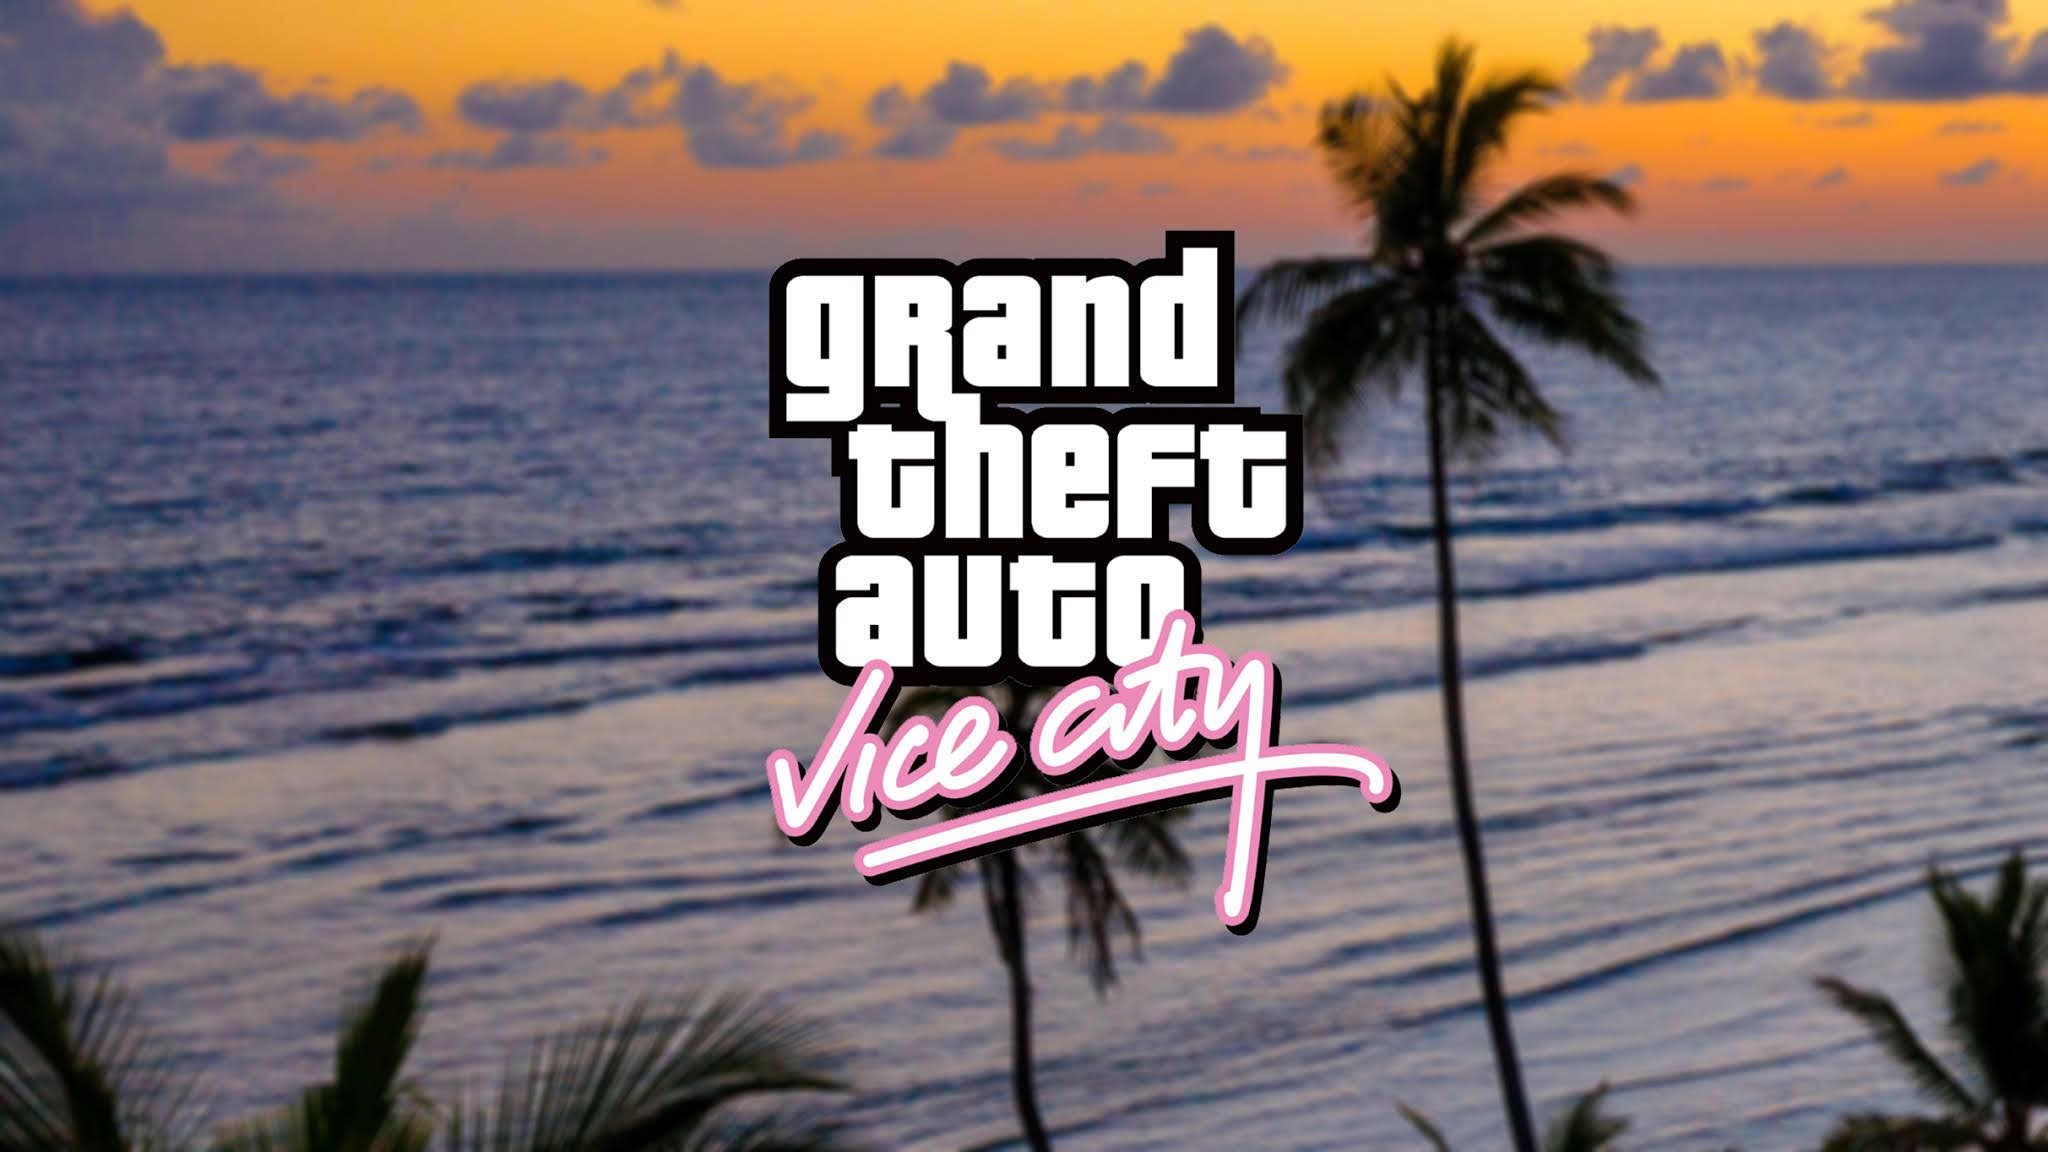 How to Improve GTA Vice City Graphics with SweetBerry Mode | AdeelDrew gta vice city remastered,gta 5 vice city mod,gta vice city,gta vice city remaster,gta vice city 2020,gta 5 vice city,gta 5 vice city remastered,gta vice city remastered gta 5 pc mod,vice city remastered,gta vice city 2021,gta vice city 2,gta 6 vice city,gta vice city mod 4k,gta 5 vice city 2,gta vice city remake,gta vc remastered,gta vice city mod,gta vice city 2 4k,gta 6 vice city map,gta 6 vice city 2,vice city,gta vice city 2 gameplay,gta vice city remastered 2021